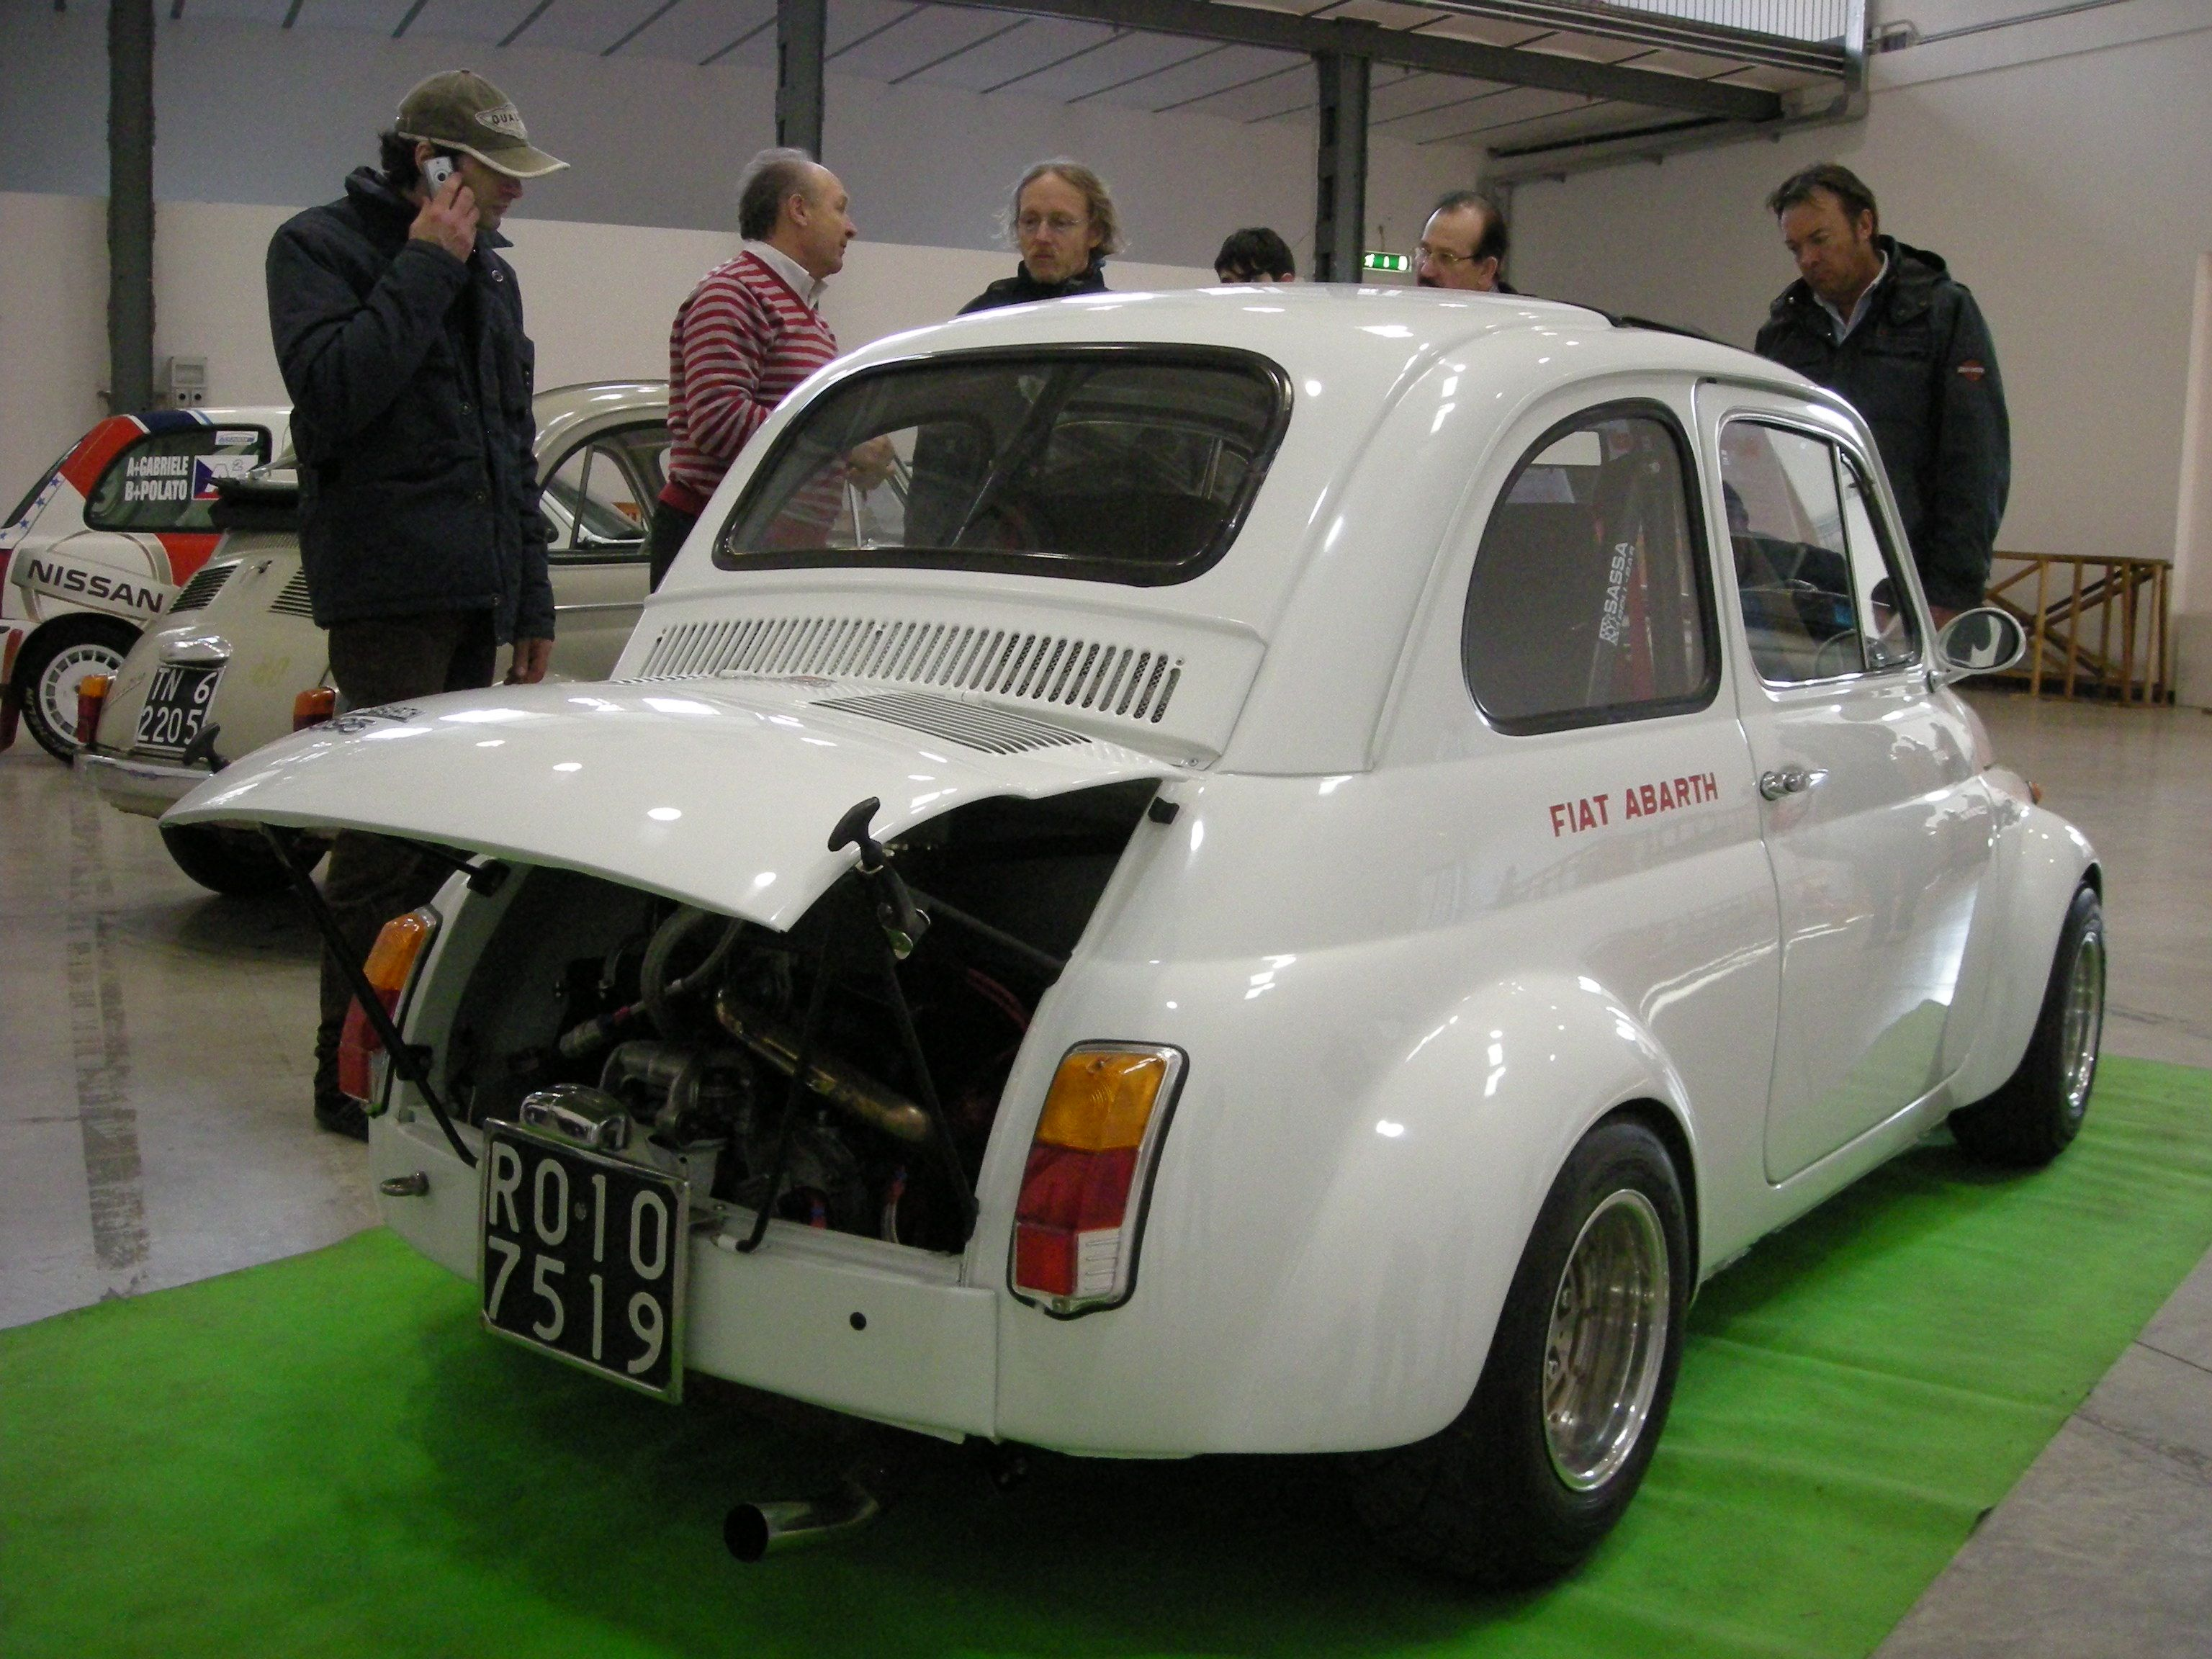 1970 Fiat 500 Abarth -- Abarth is Fiat's performance division. Jeremy  Clarkson once described